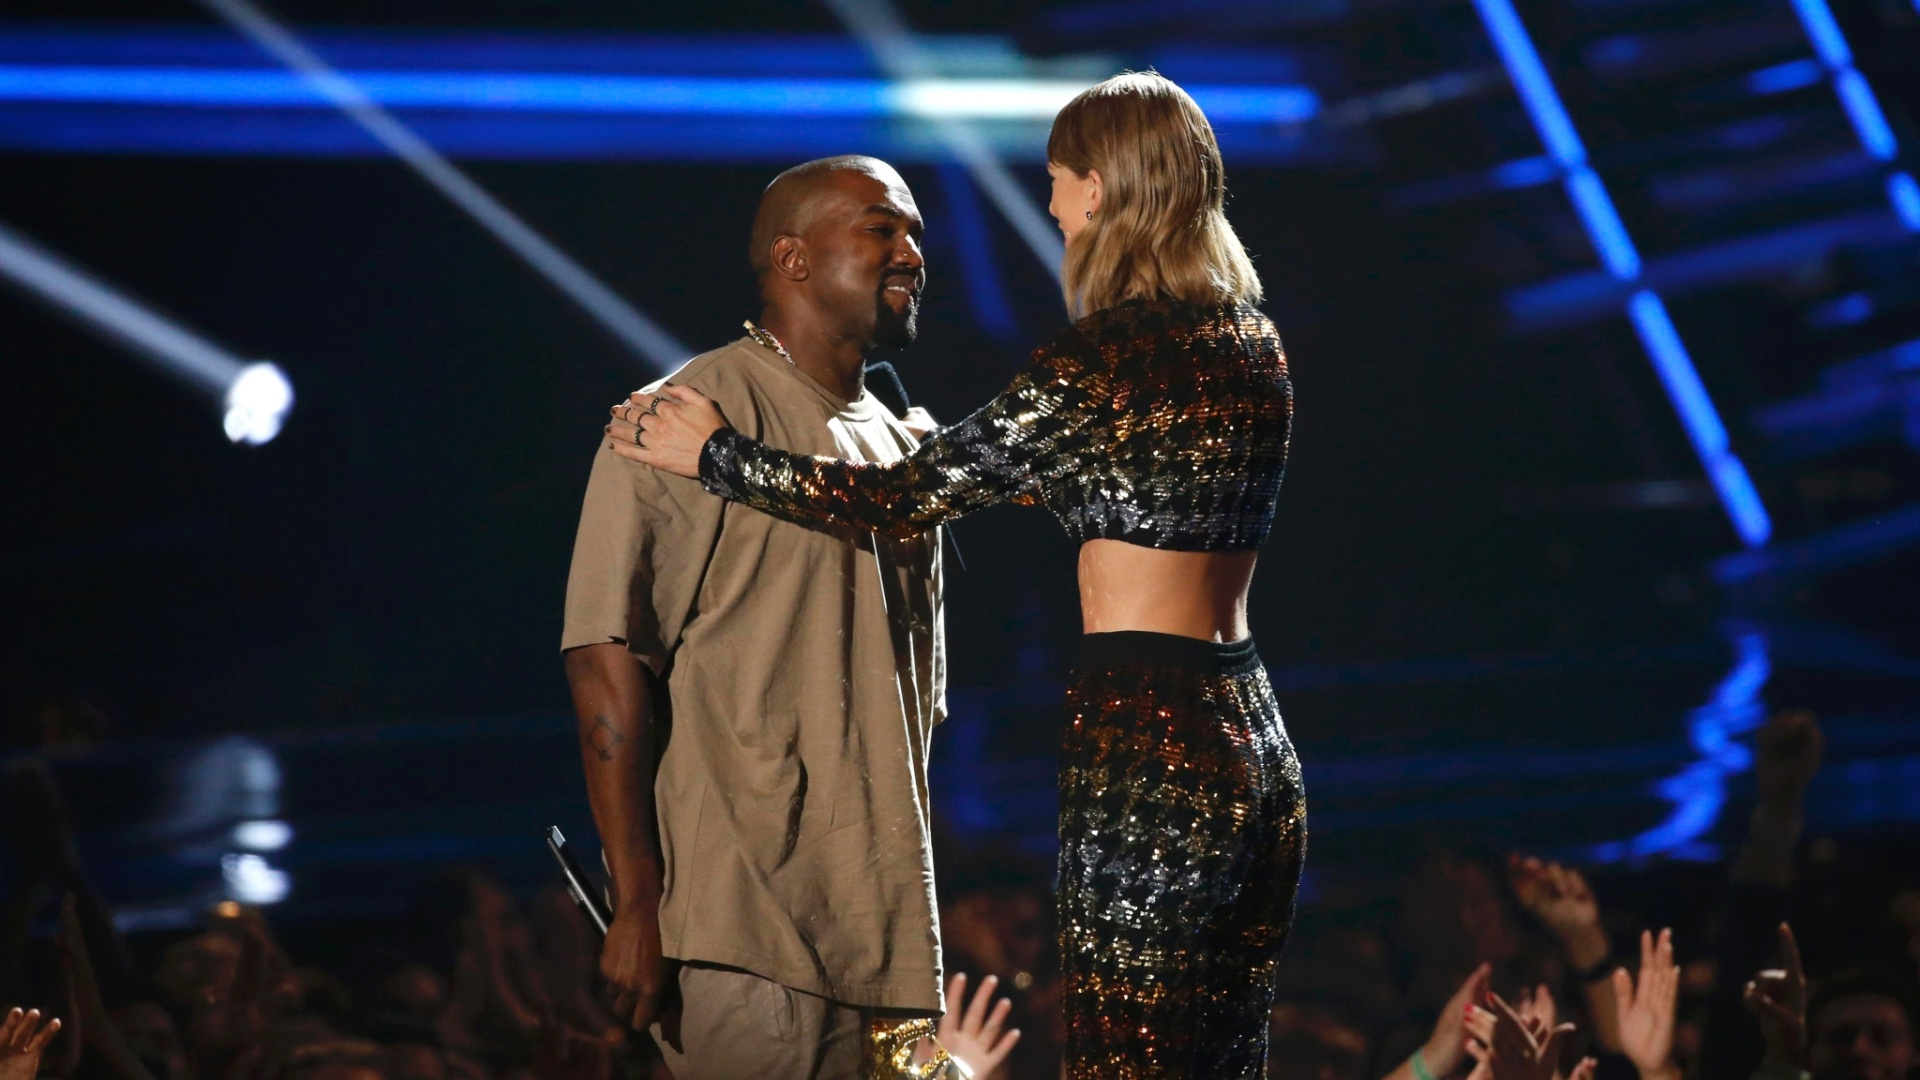 30.ago.2015 - Kanye West recebeu o prêmio de Michael Jackson Video Vanguard Award de Taylor Swift